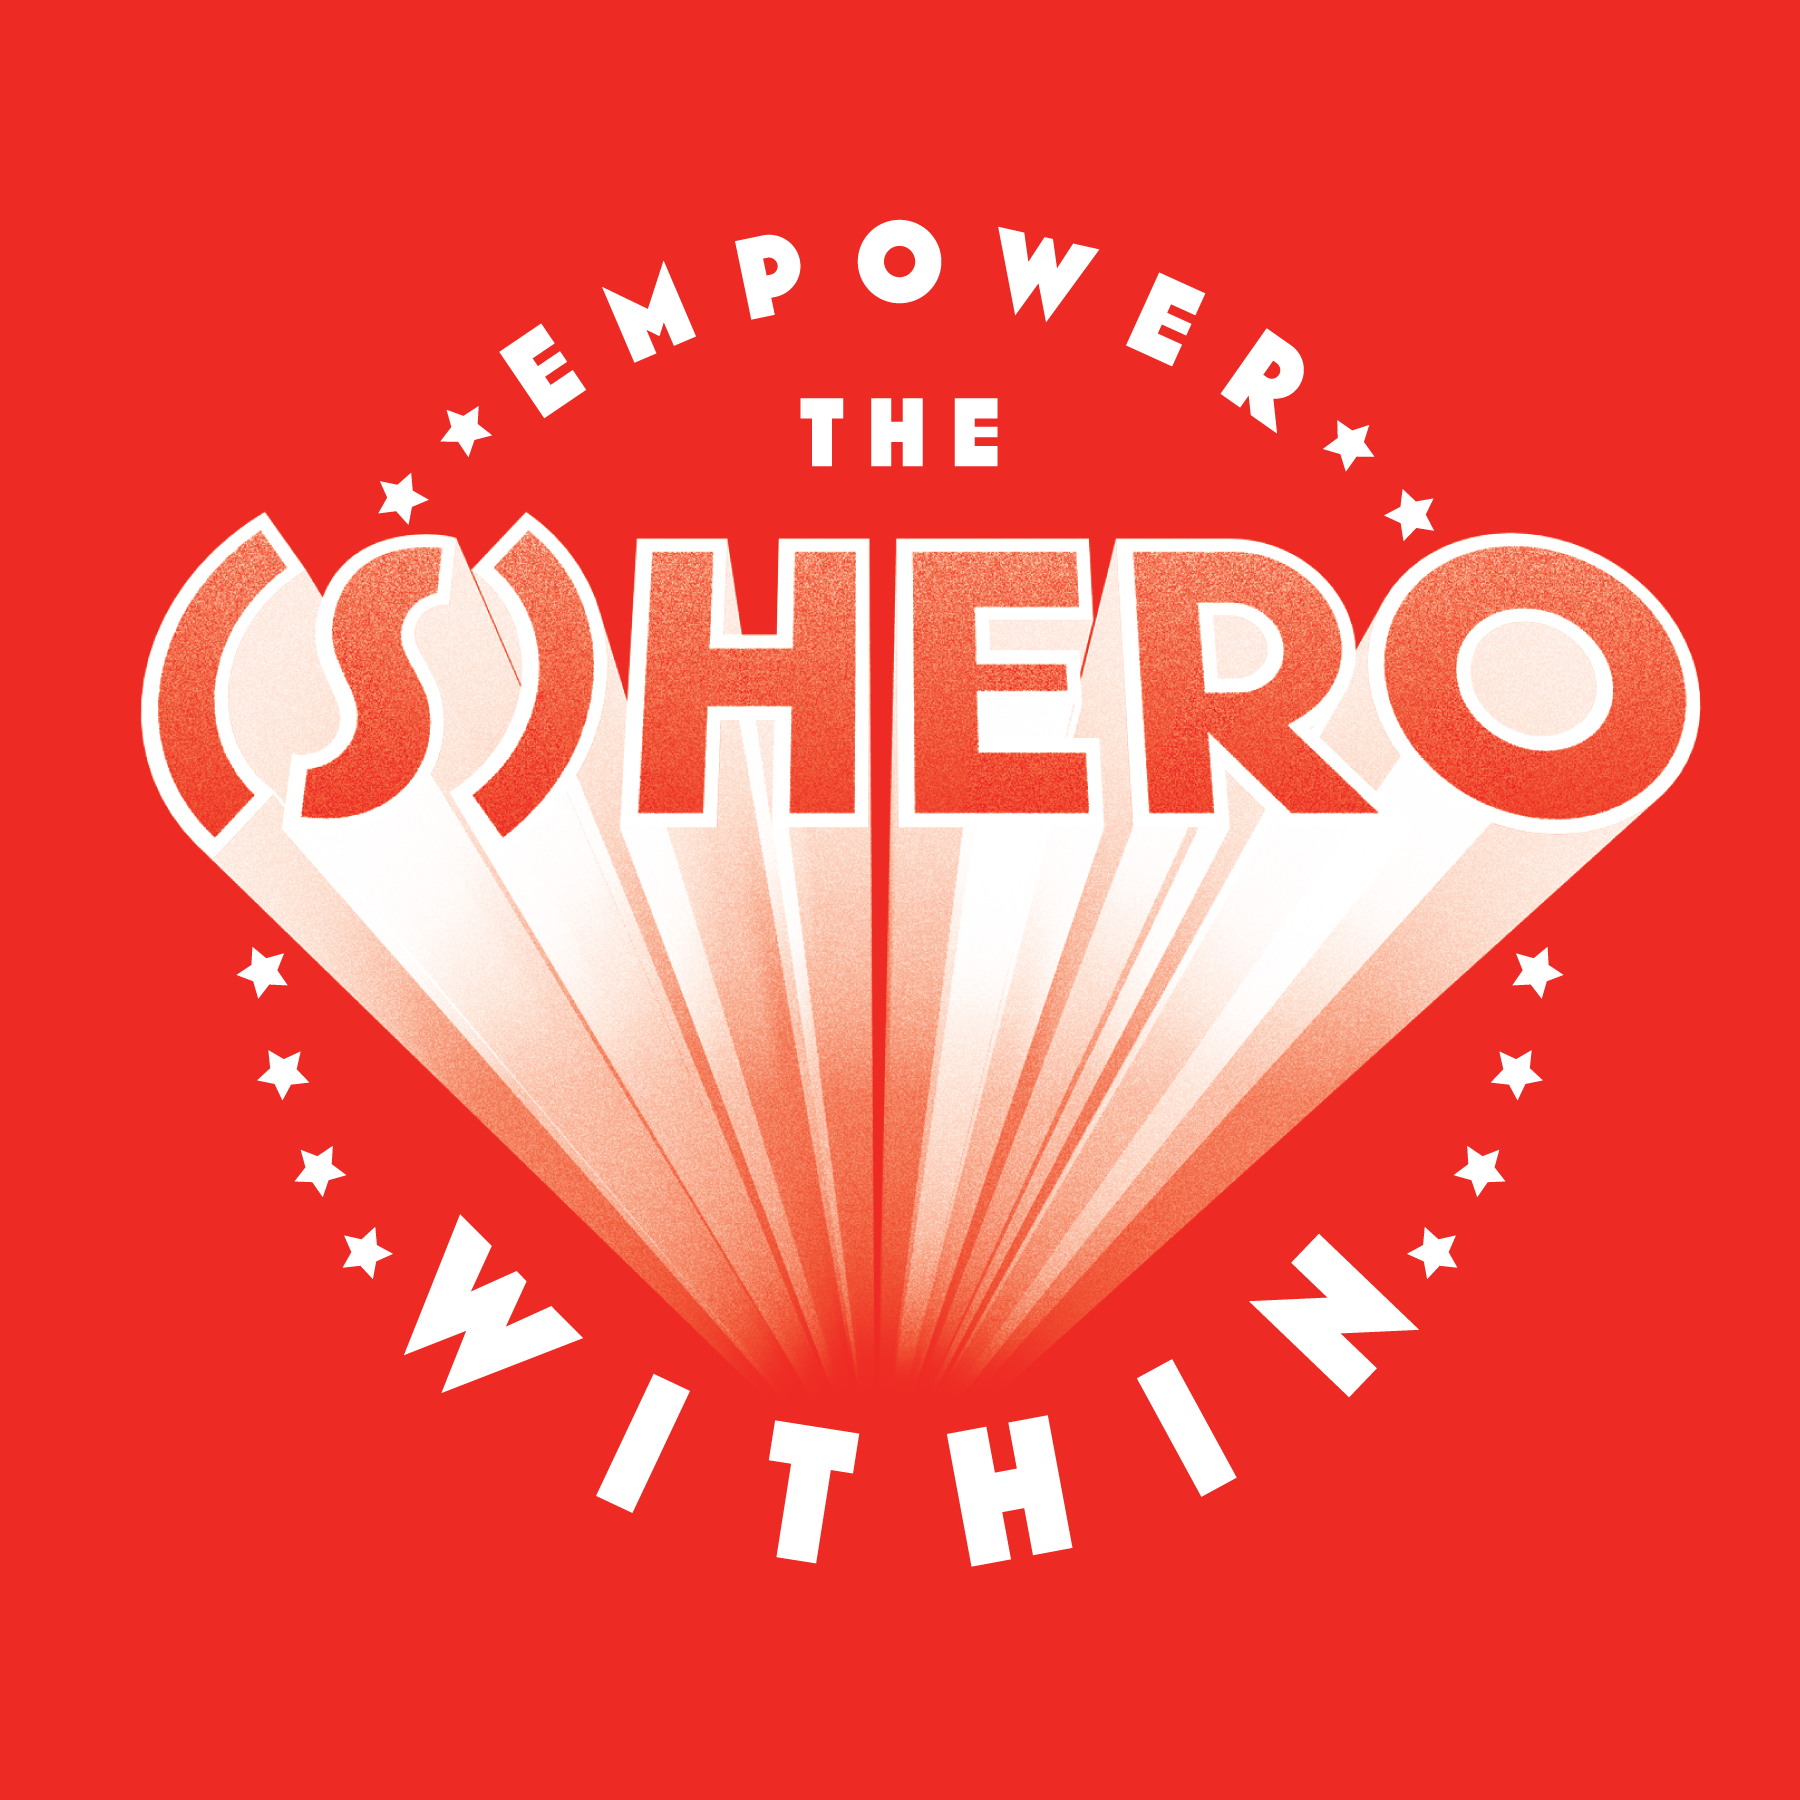 Mothers Day Graphic: Empower the Shero Within